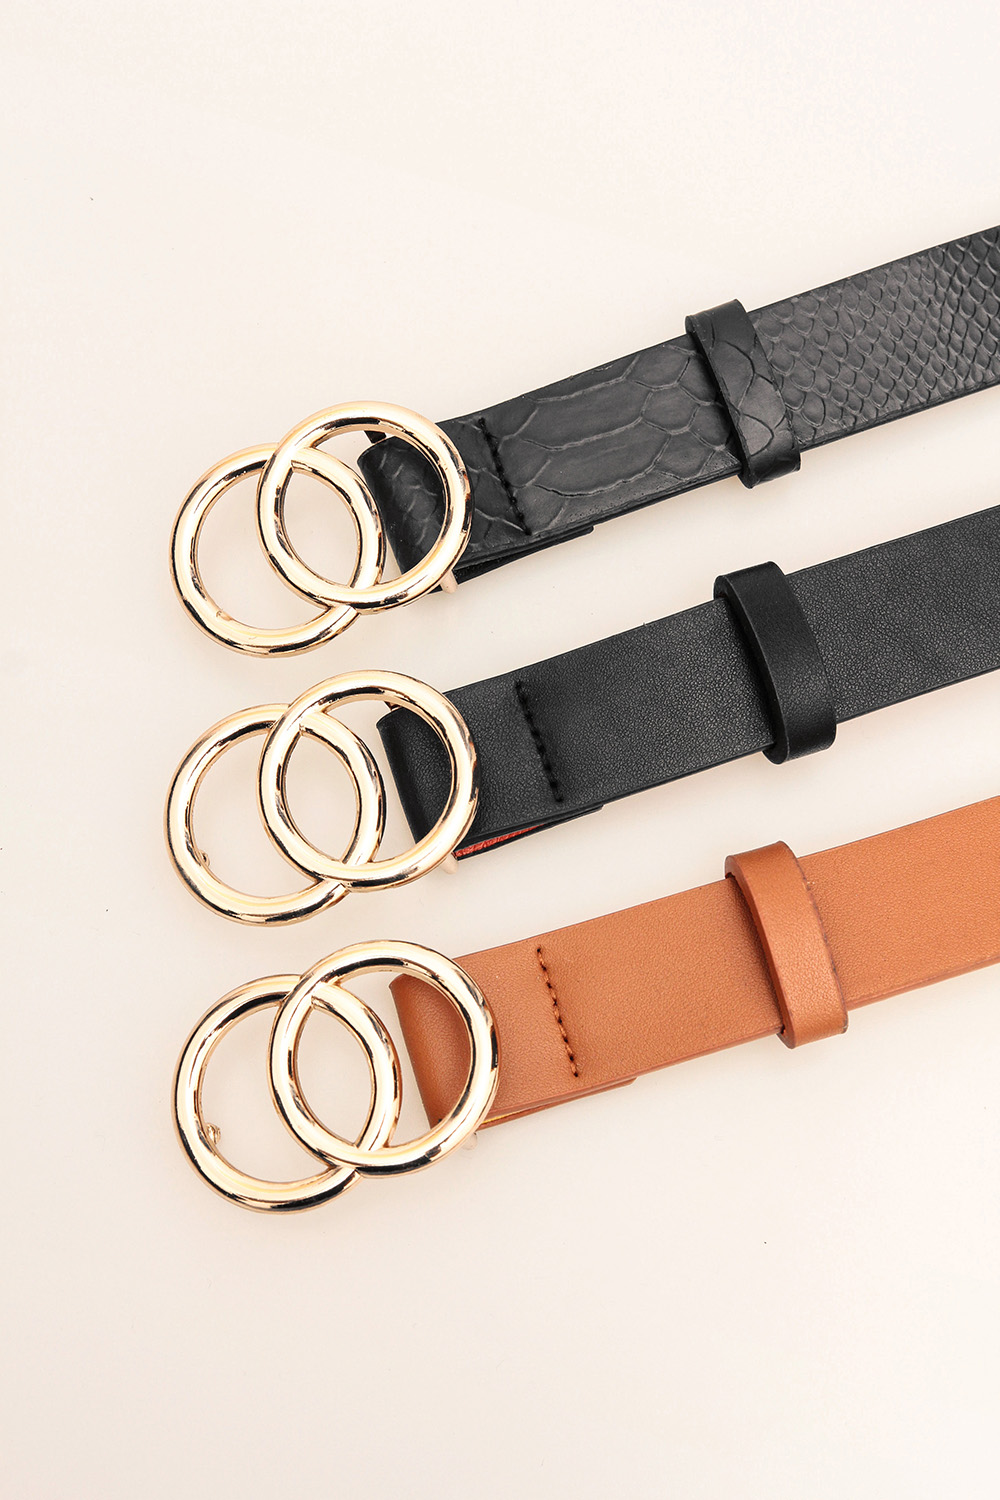 Double Round Decorative Attractive Unique Design With High Quality Belt For Women And Girls 6